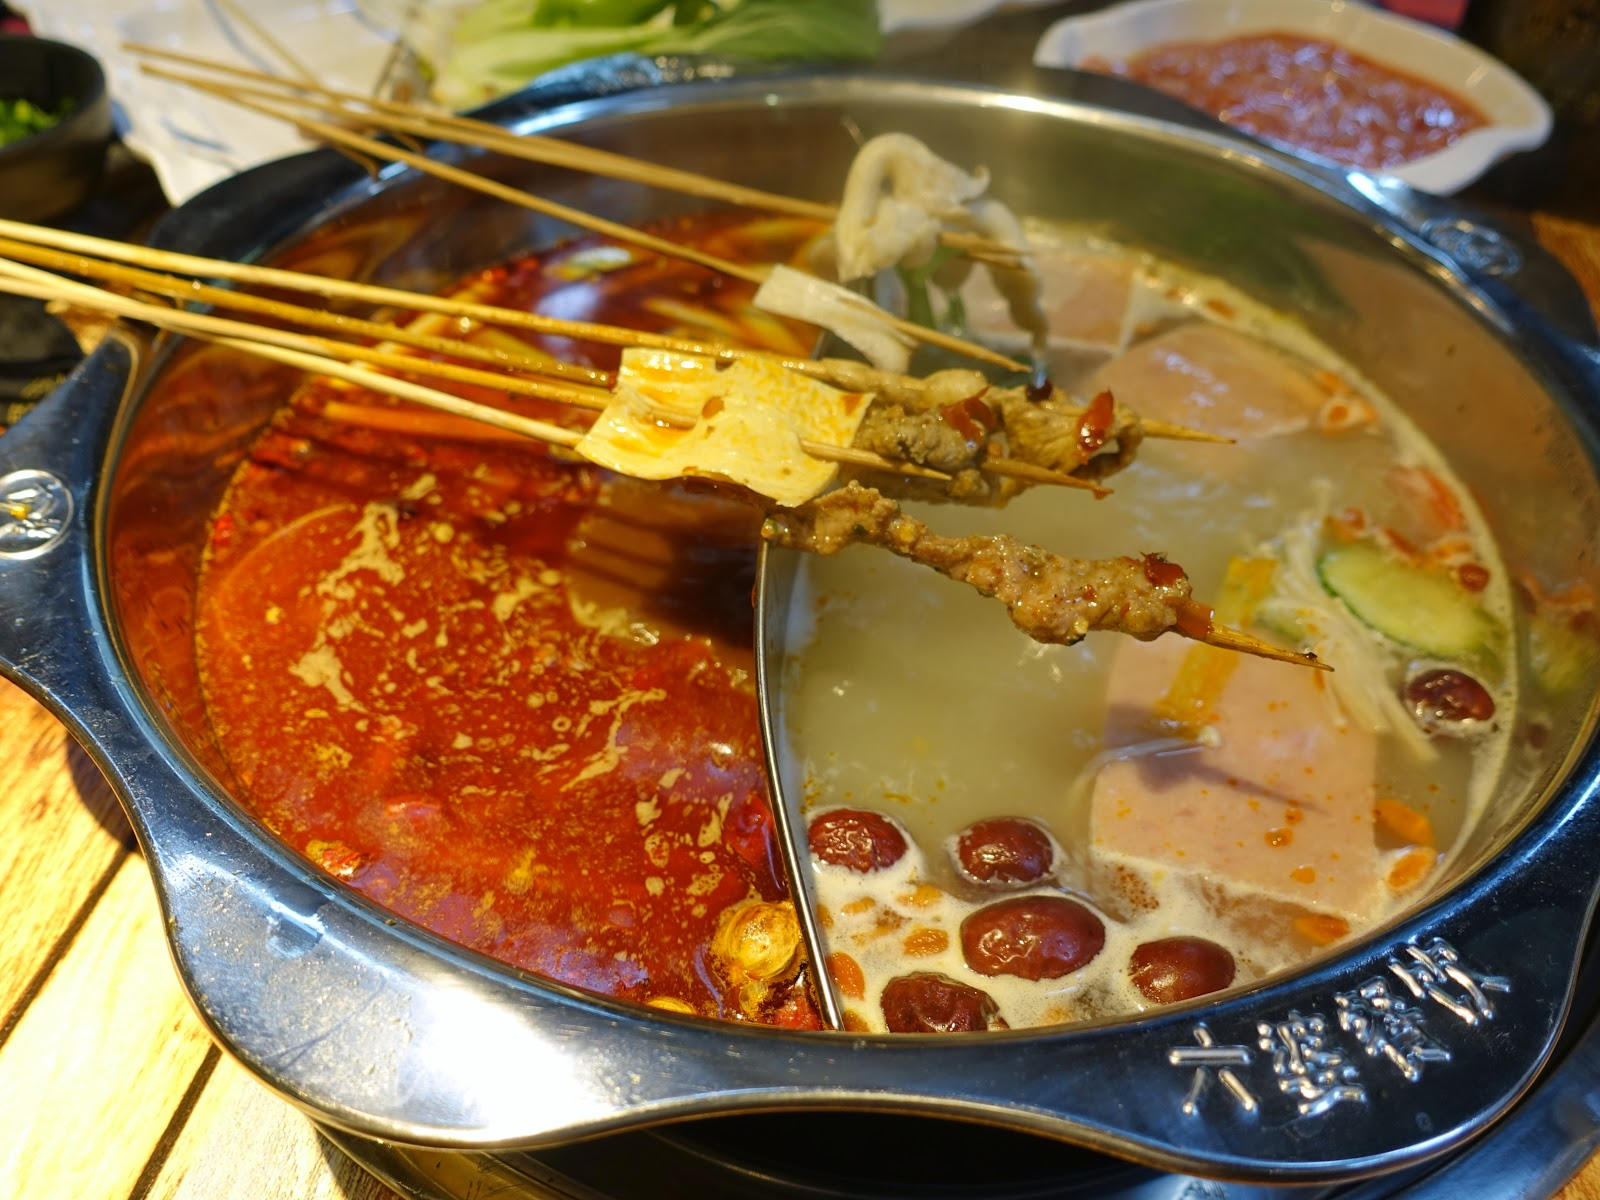 Hot Cuisine Soft Opening First Day Visit To Six Po Hot Pot The